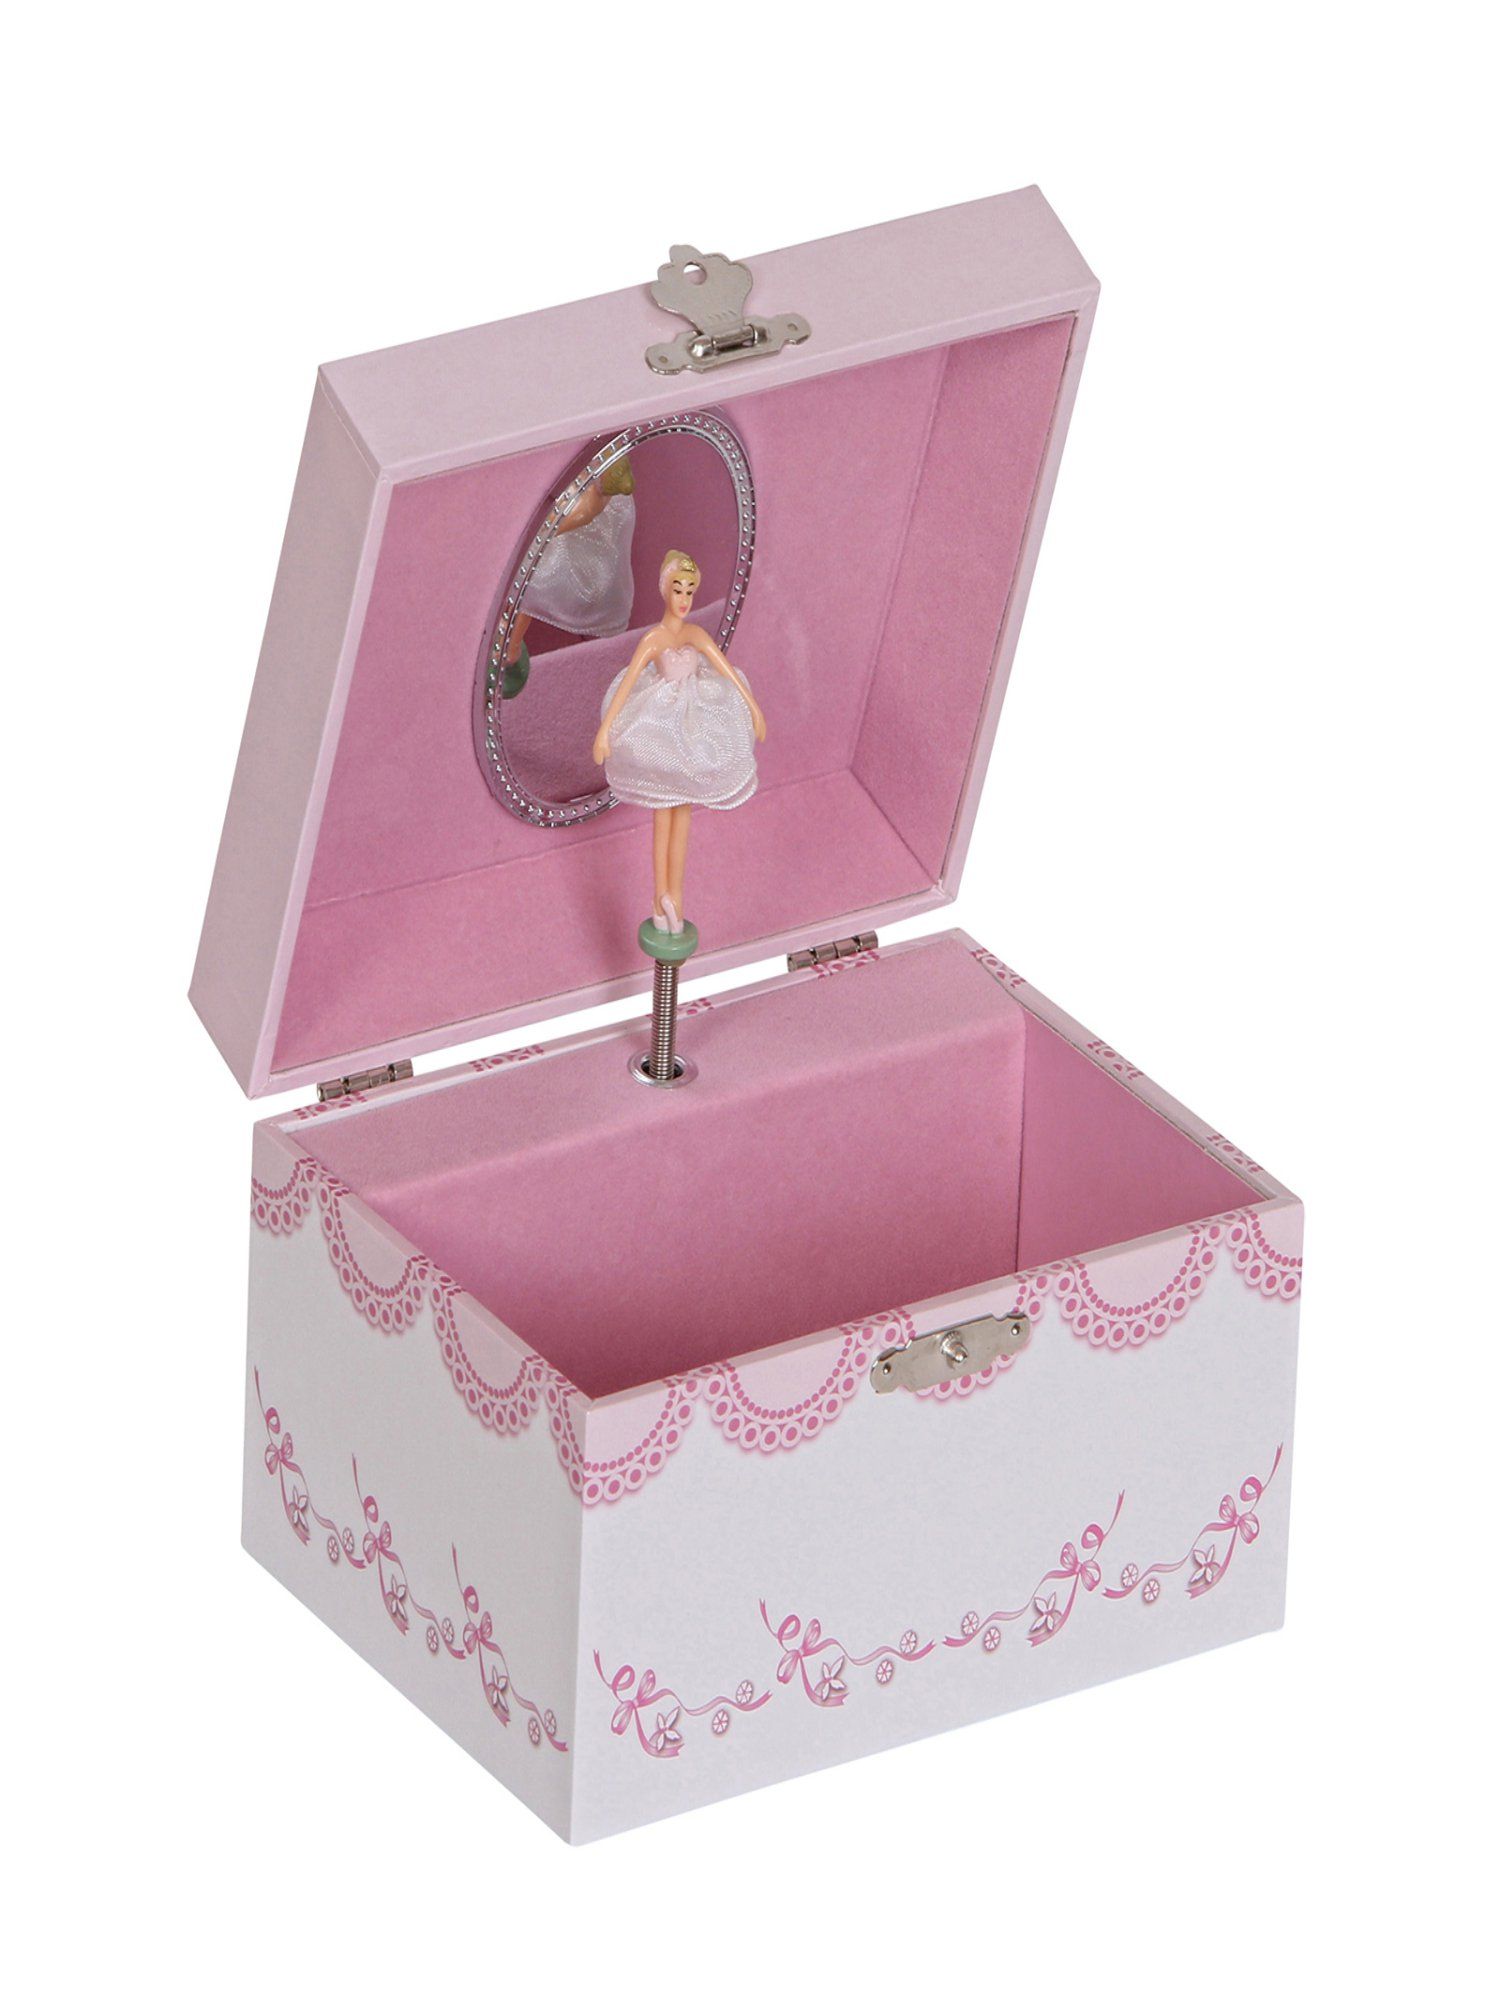 Mele amp Co Clarice Girls Musical Ballerina Jewelry Box Walmartcom